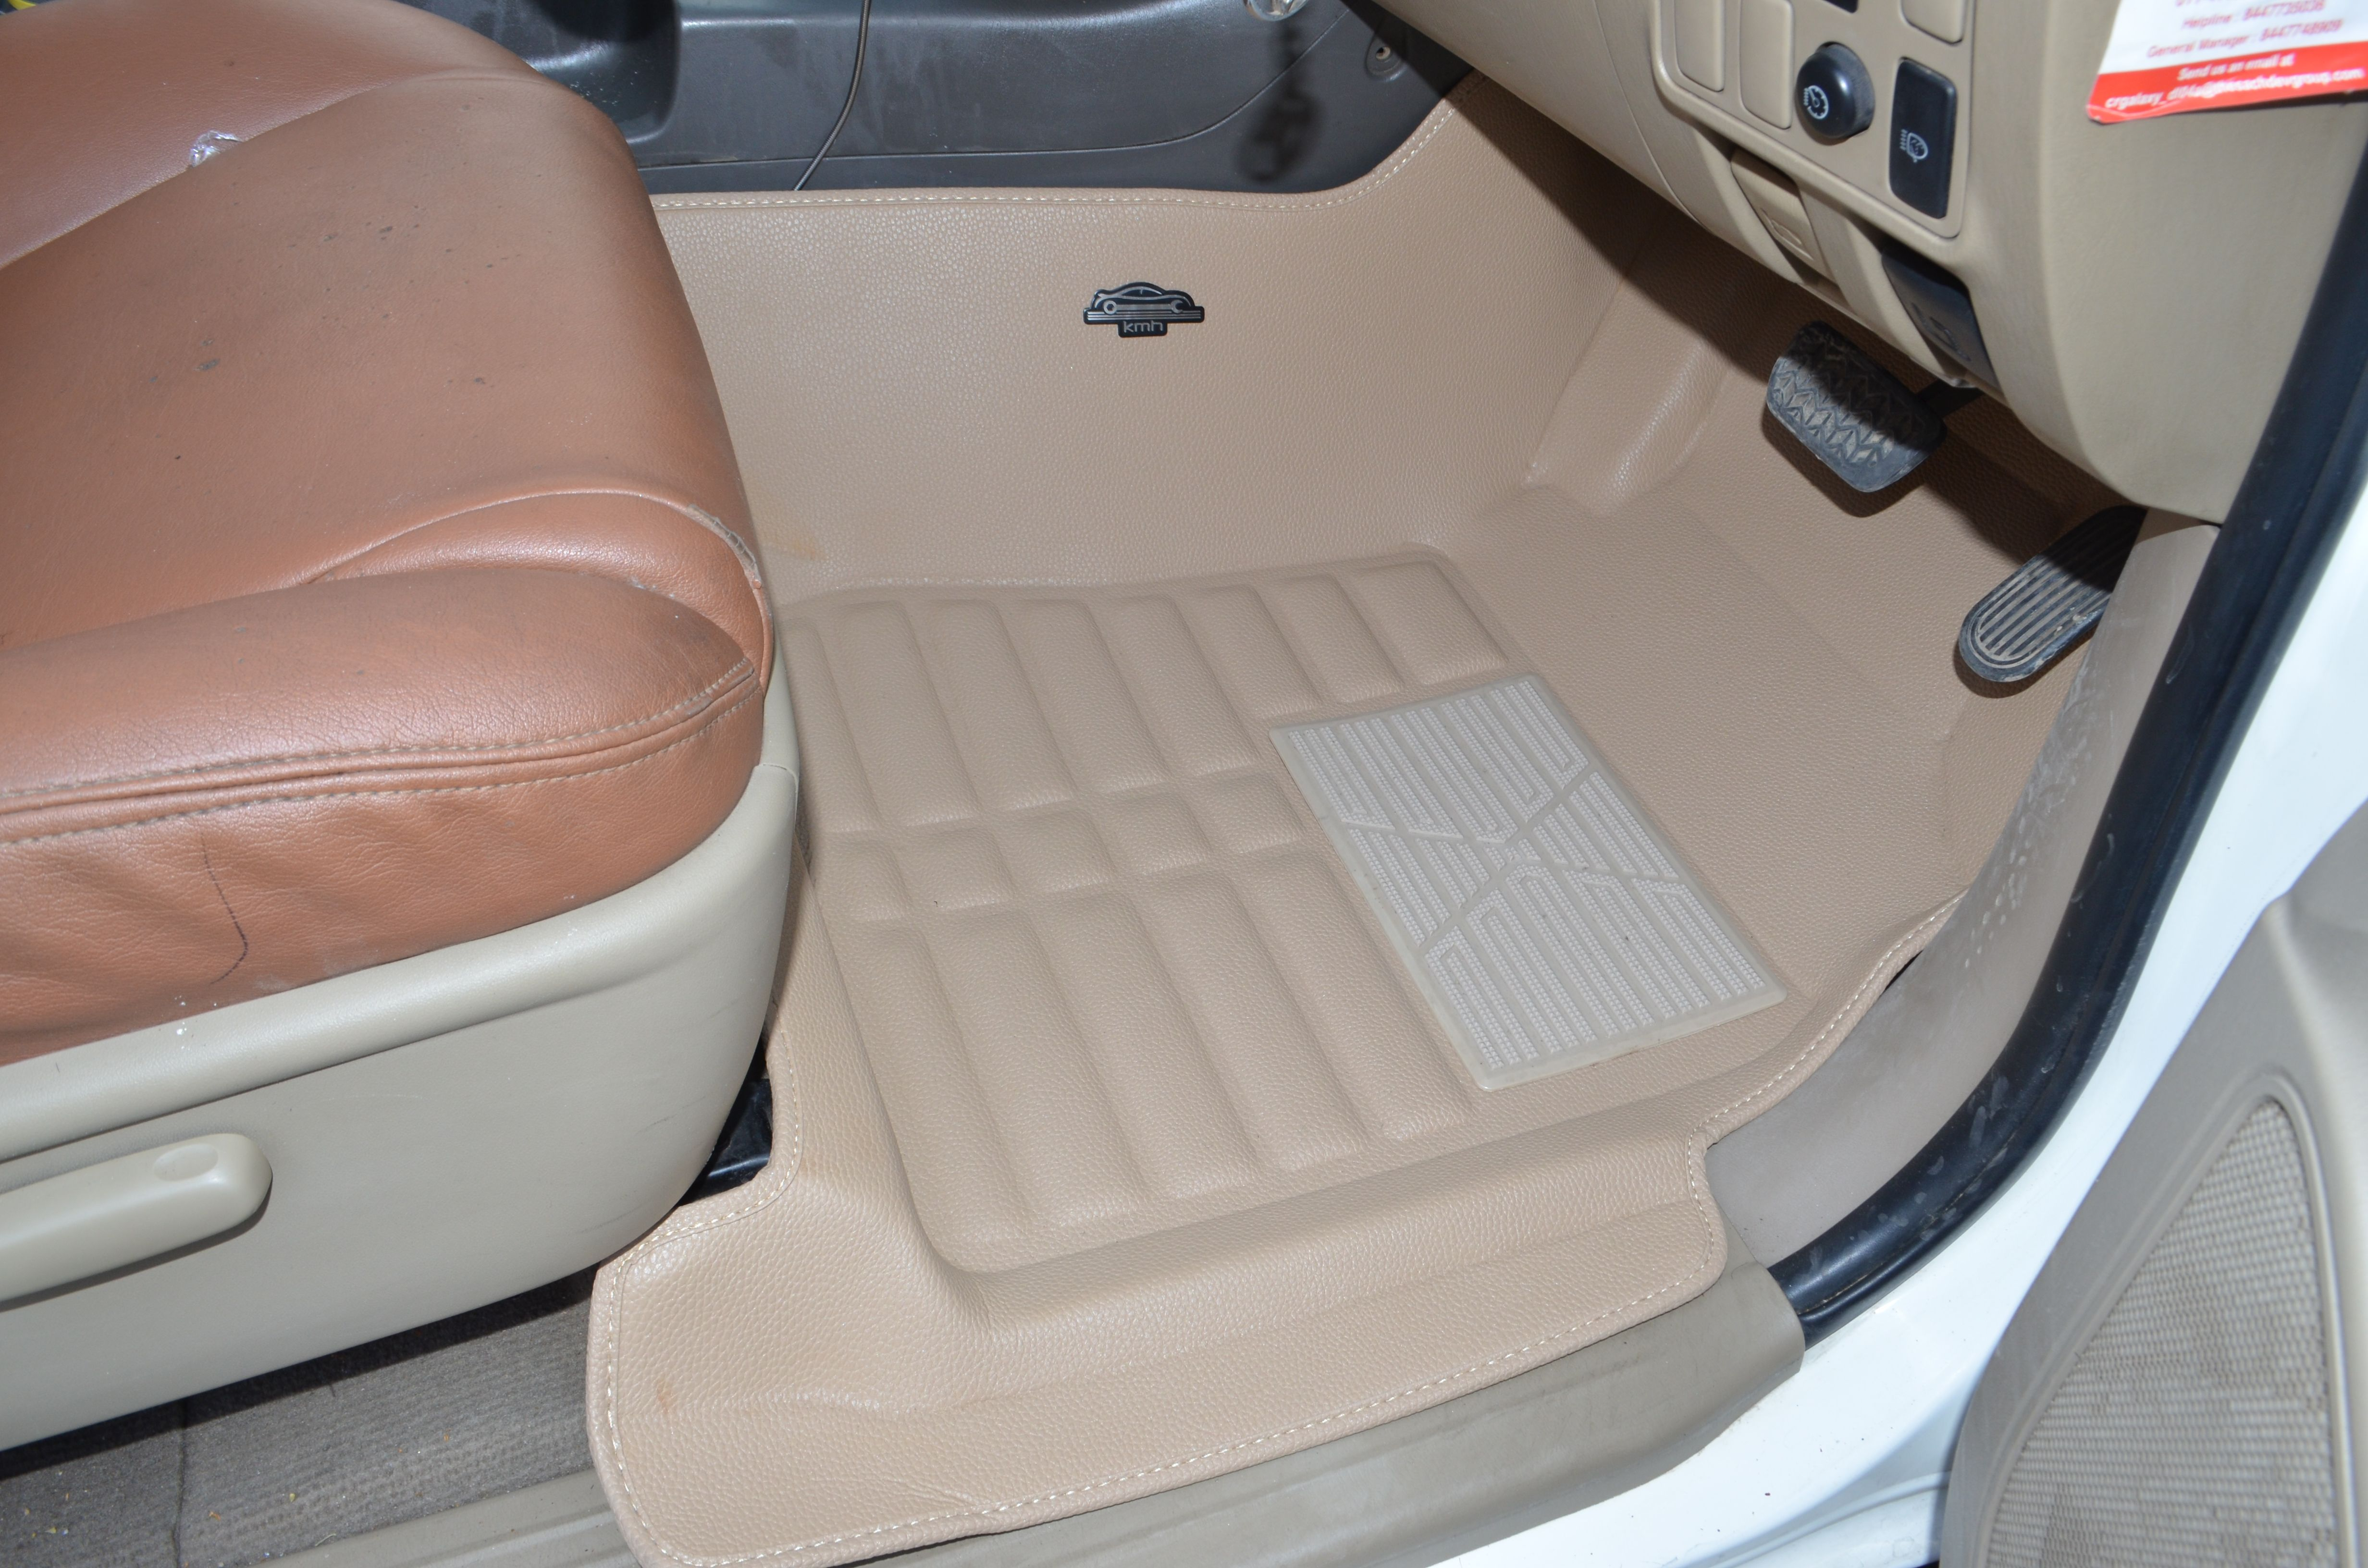 Kmh 5d Mats Fitted In Toyota Fortuner Beige Car Floor Mats Caraccessoriesonline Car Buying Tips Car Emergency Kit Car Seats